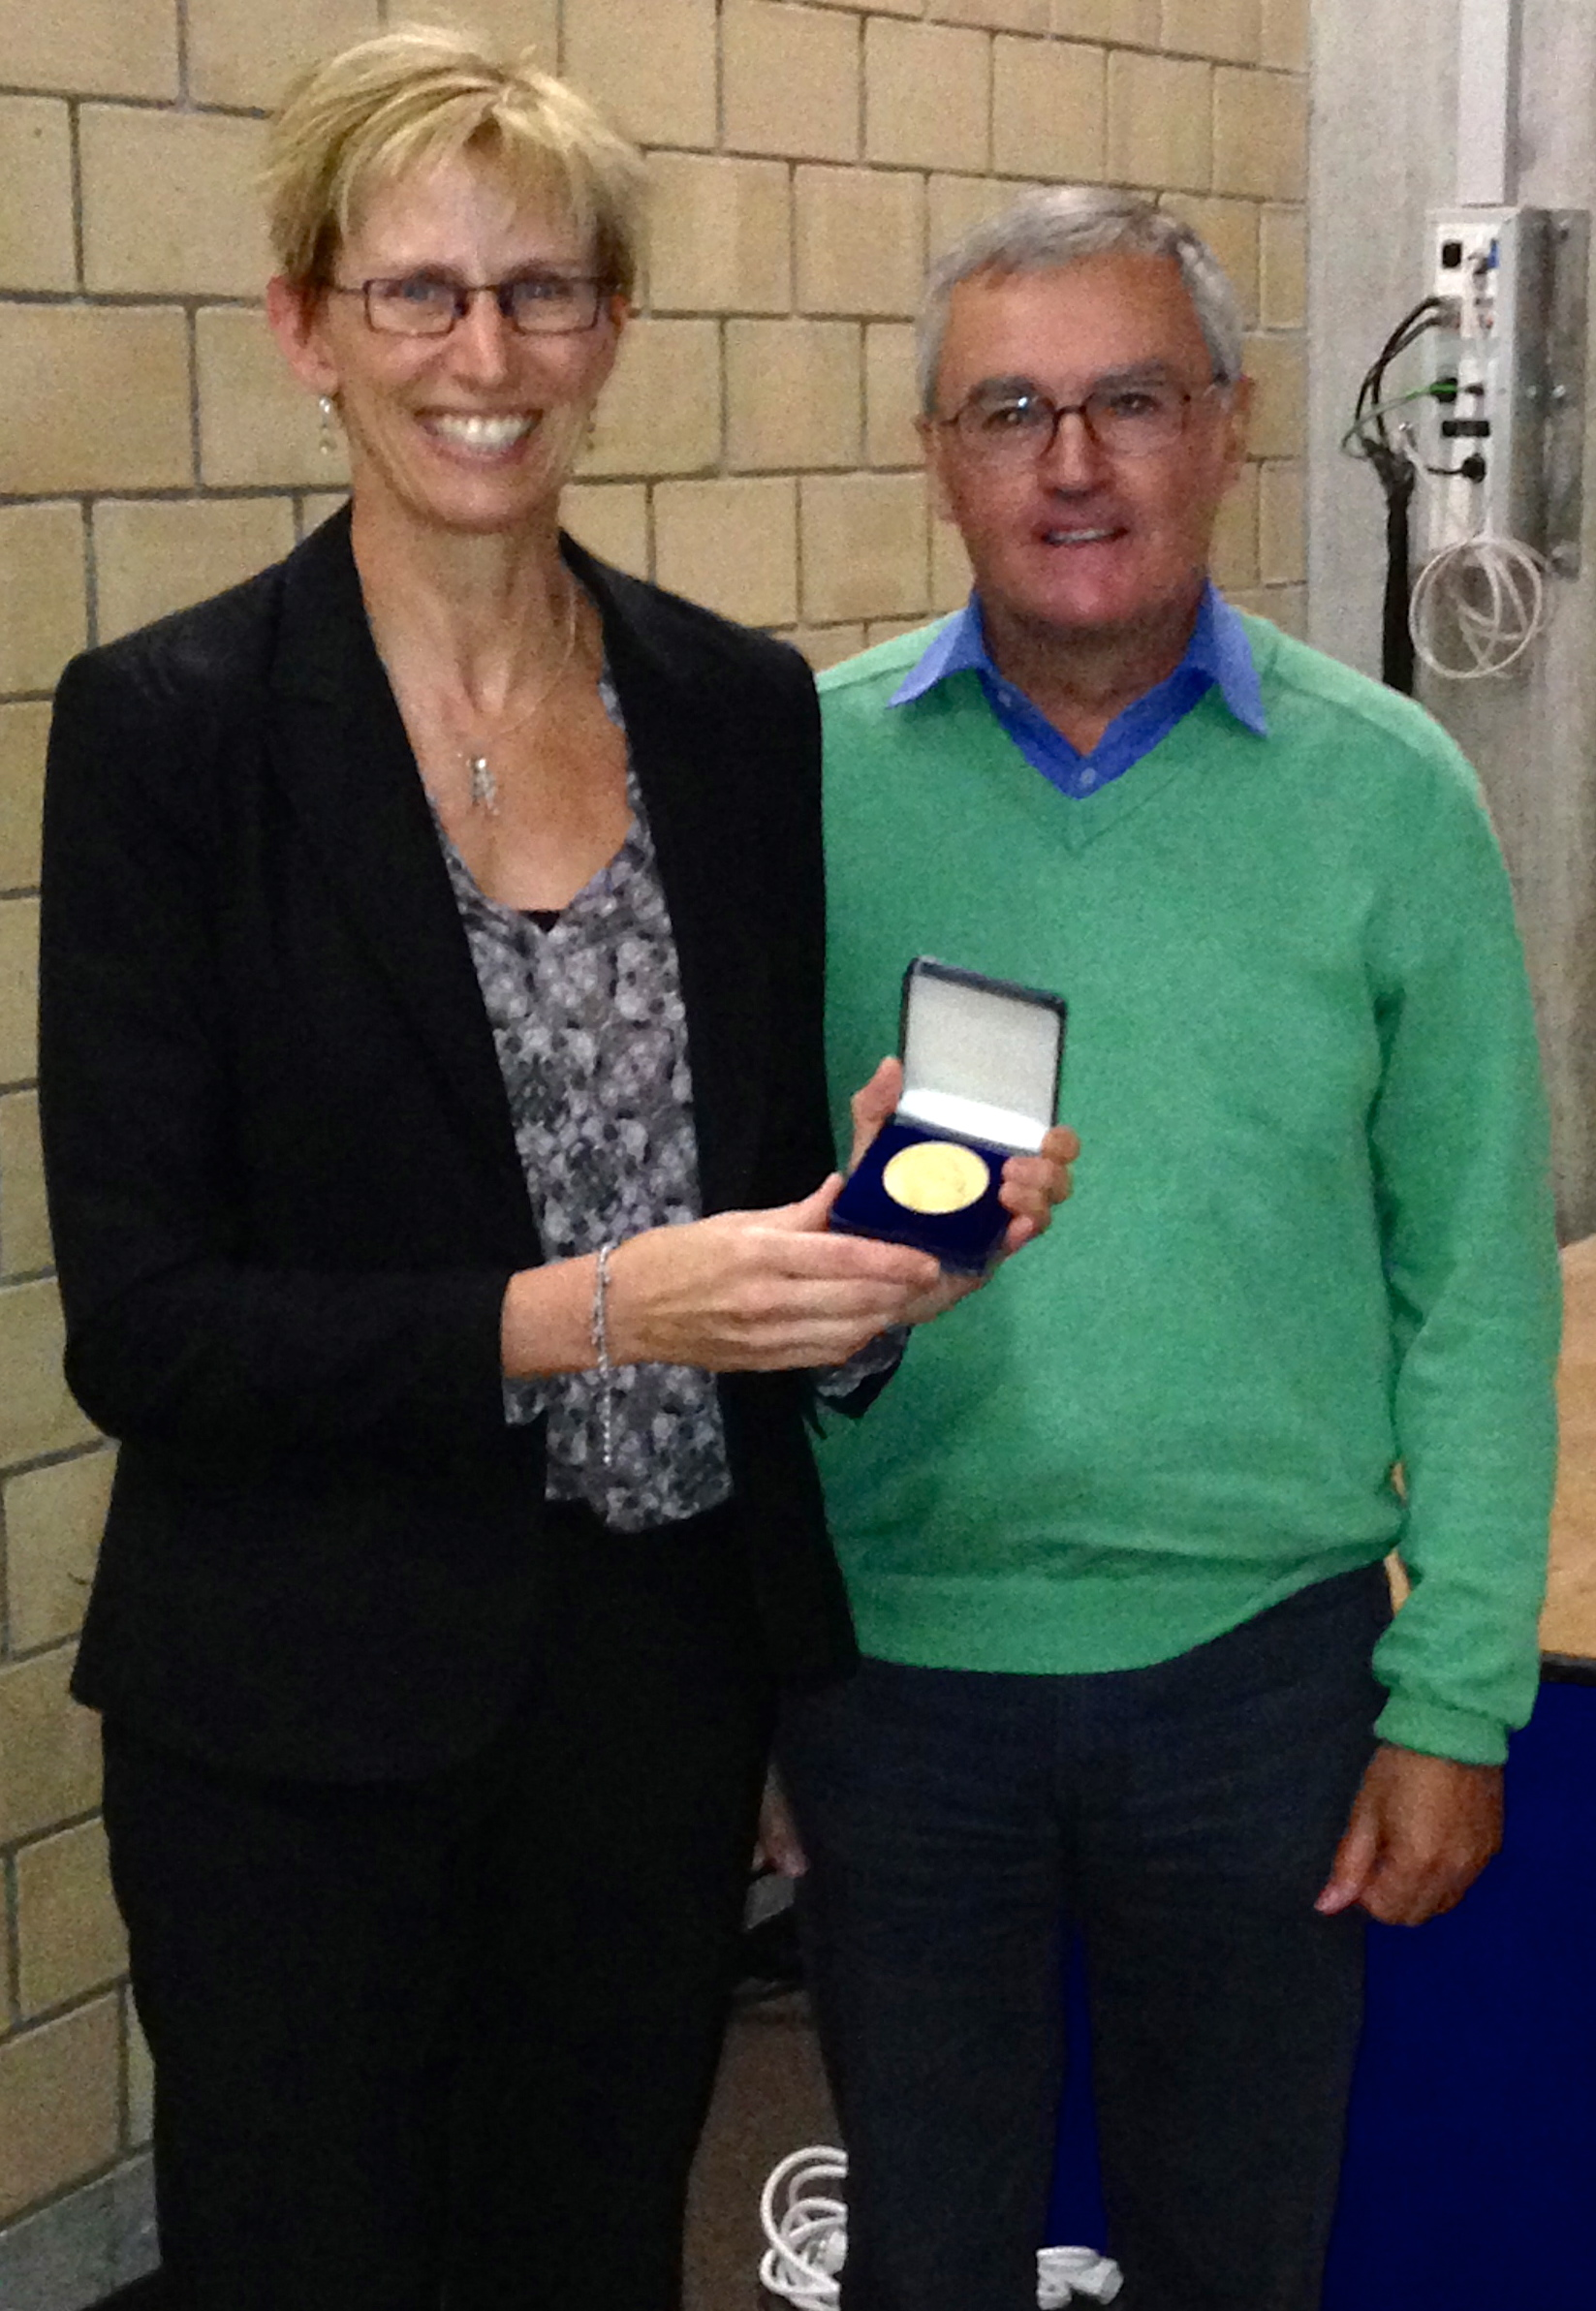 Prof. Laura Kiessling receiving the Hofmann medal from Prof. John Robinson